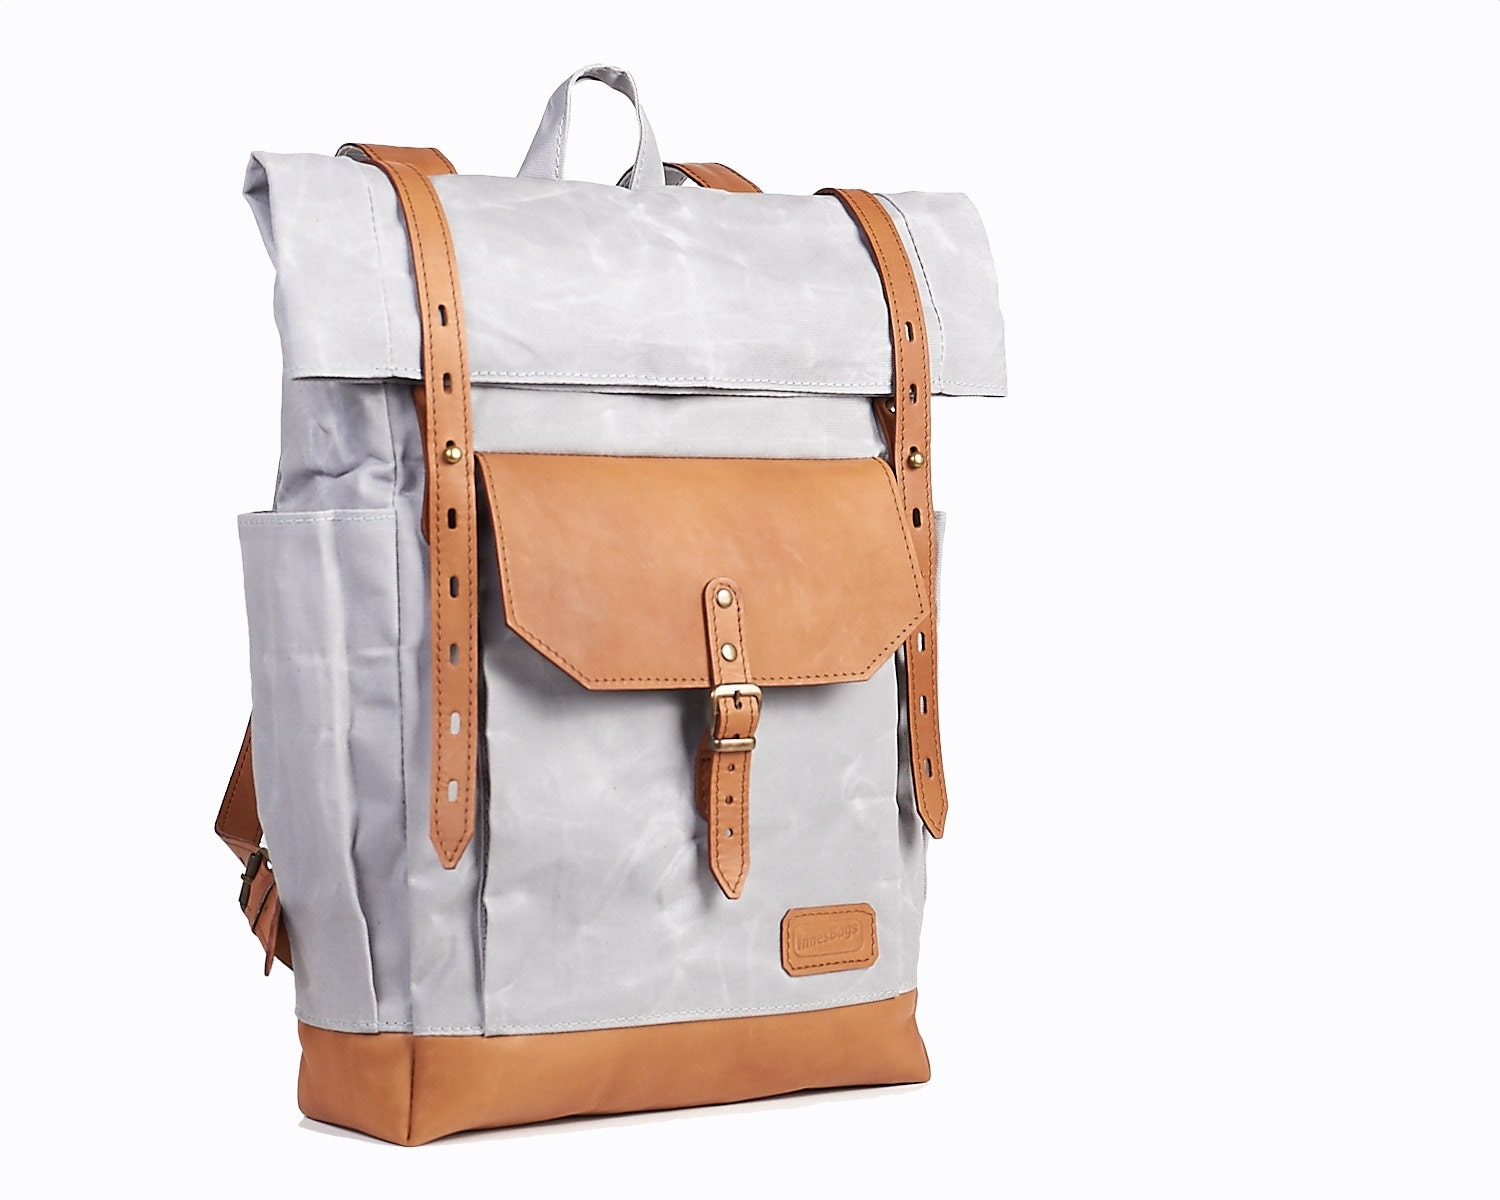 Waxed Canvas Backpack Roll Top Canvas Leather Backpack For